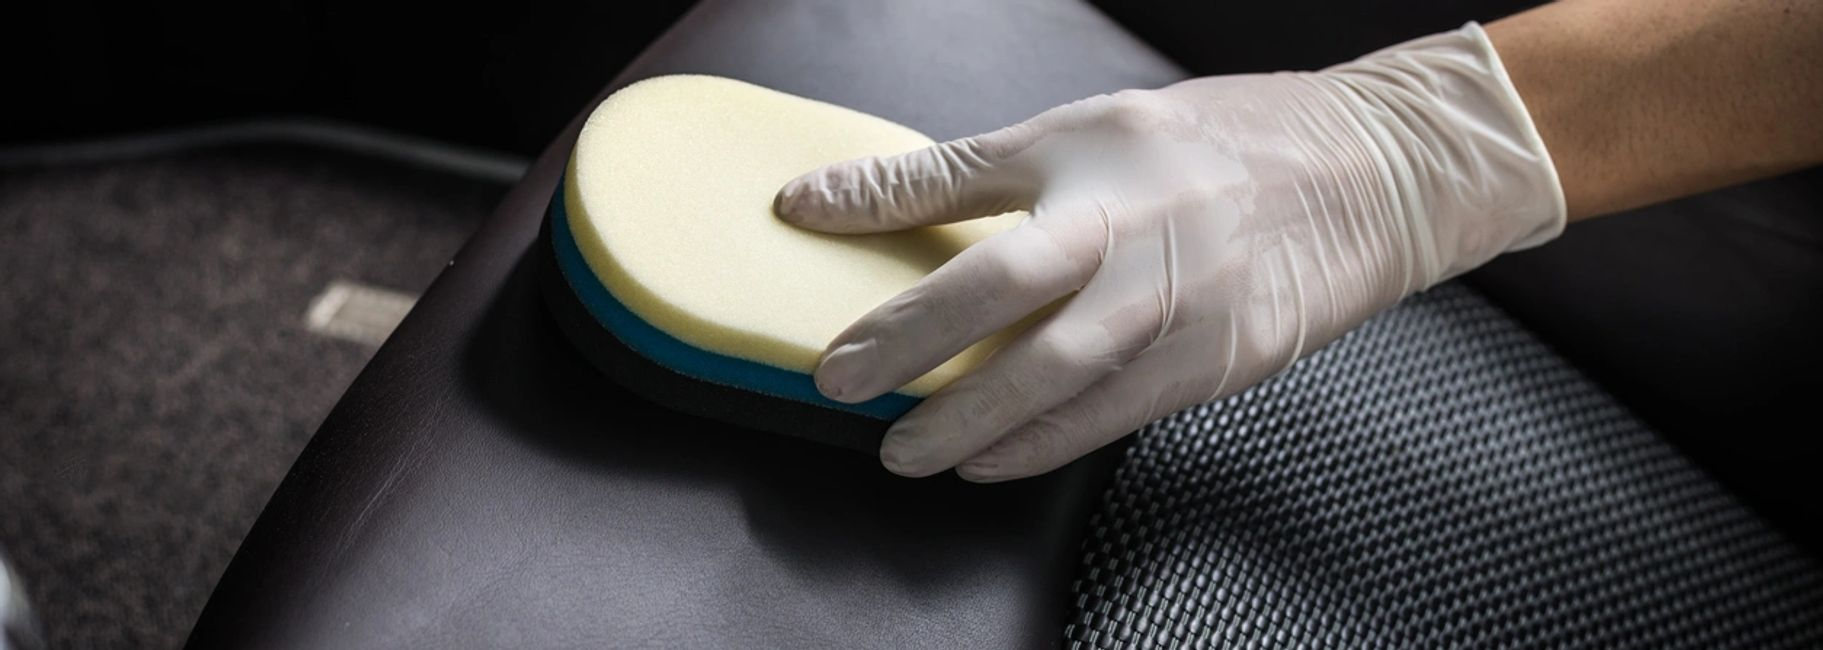 A gloved hand is using a brush to remove dirt from a leather car seat.